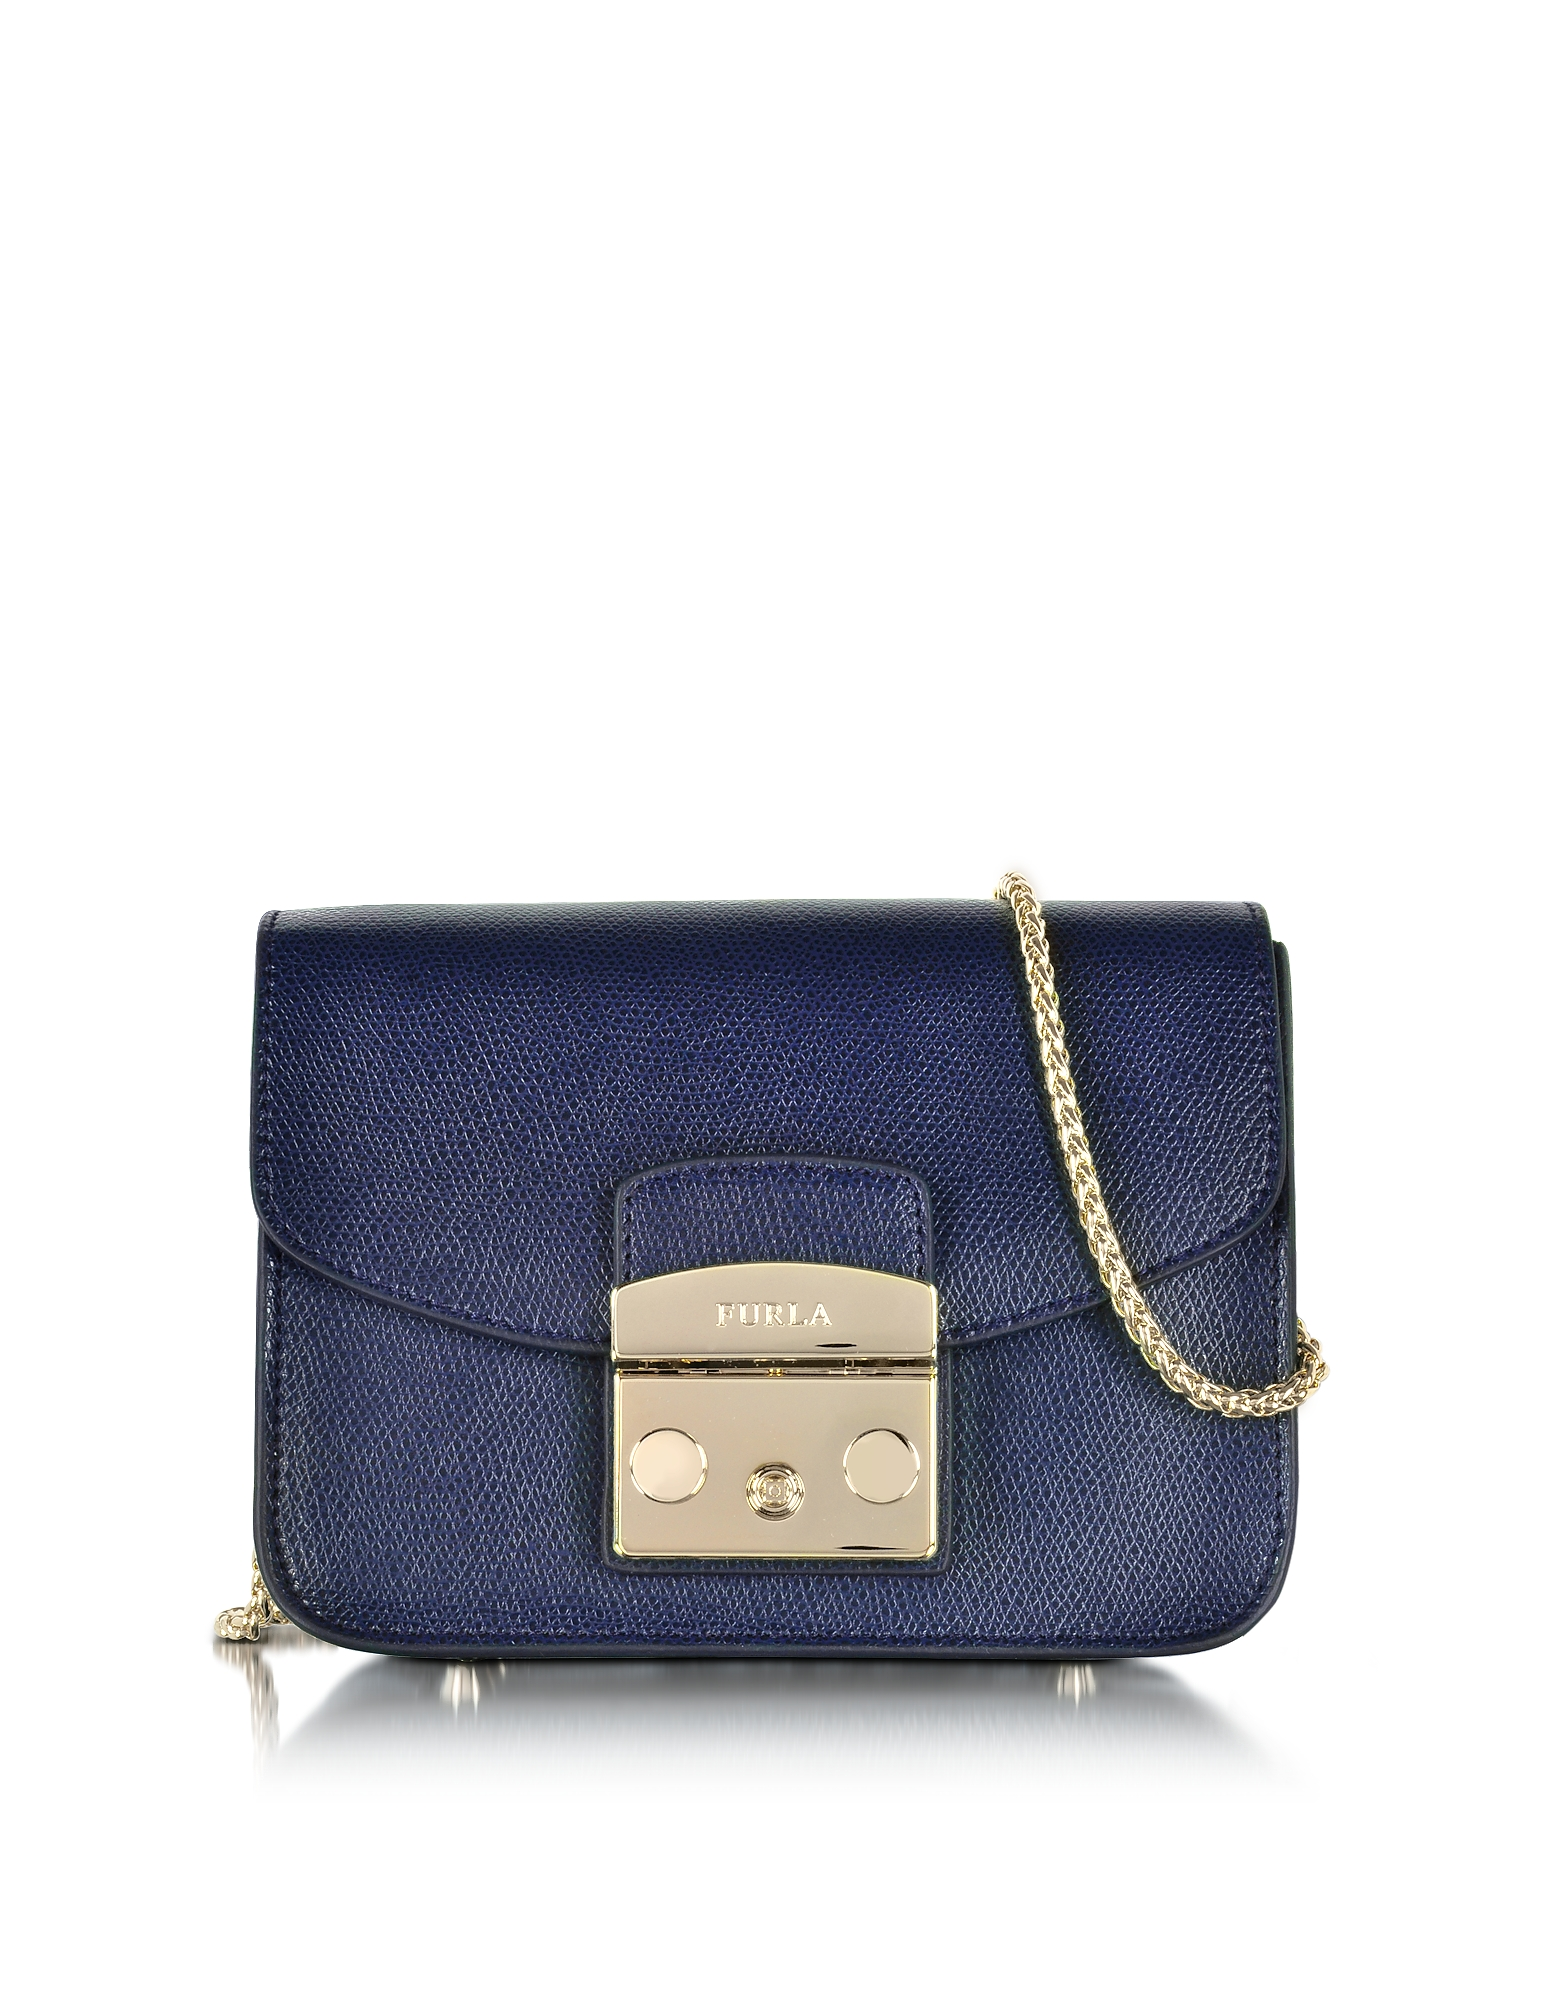 Furla Handbags, Metropolis Mini Navy Blue Leather Crossbody Bag